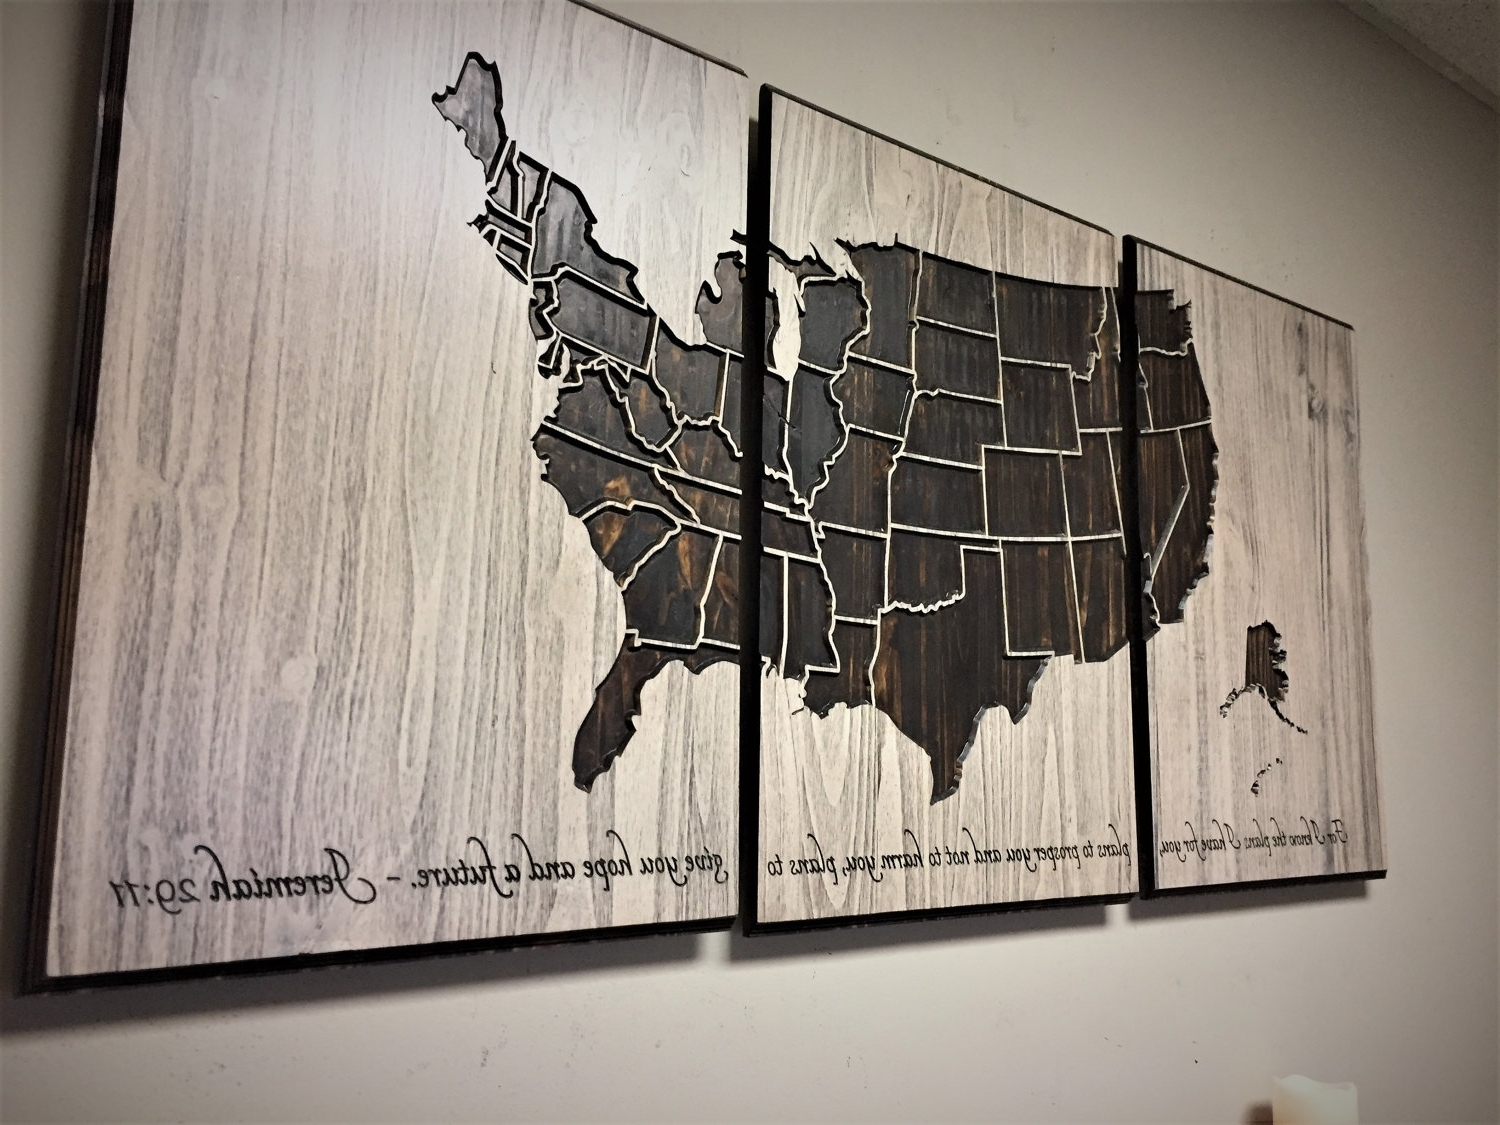 Us Map Wall Art For Current Us Map Wall Art, Wood Wall Art, Push Pin Map, 3 Panel Map, Vintage (Gallery 8 of 15)